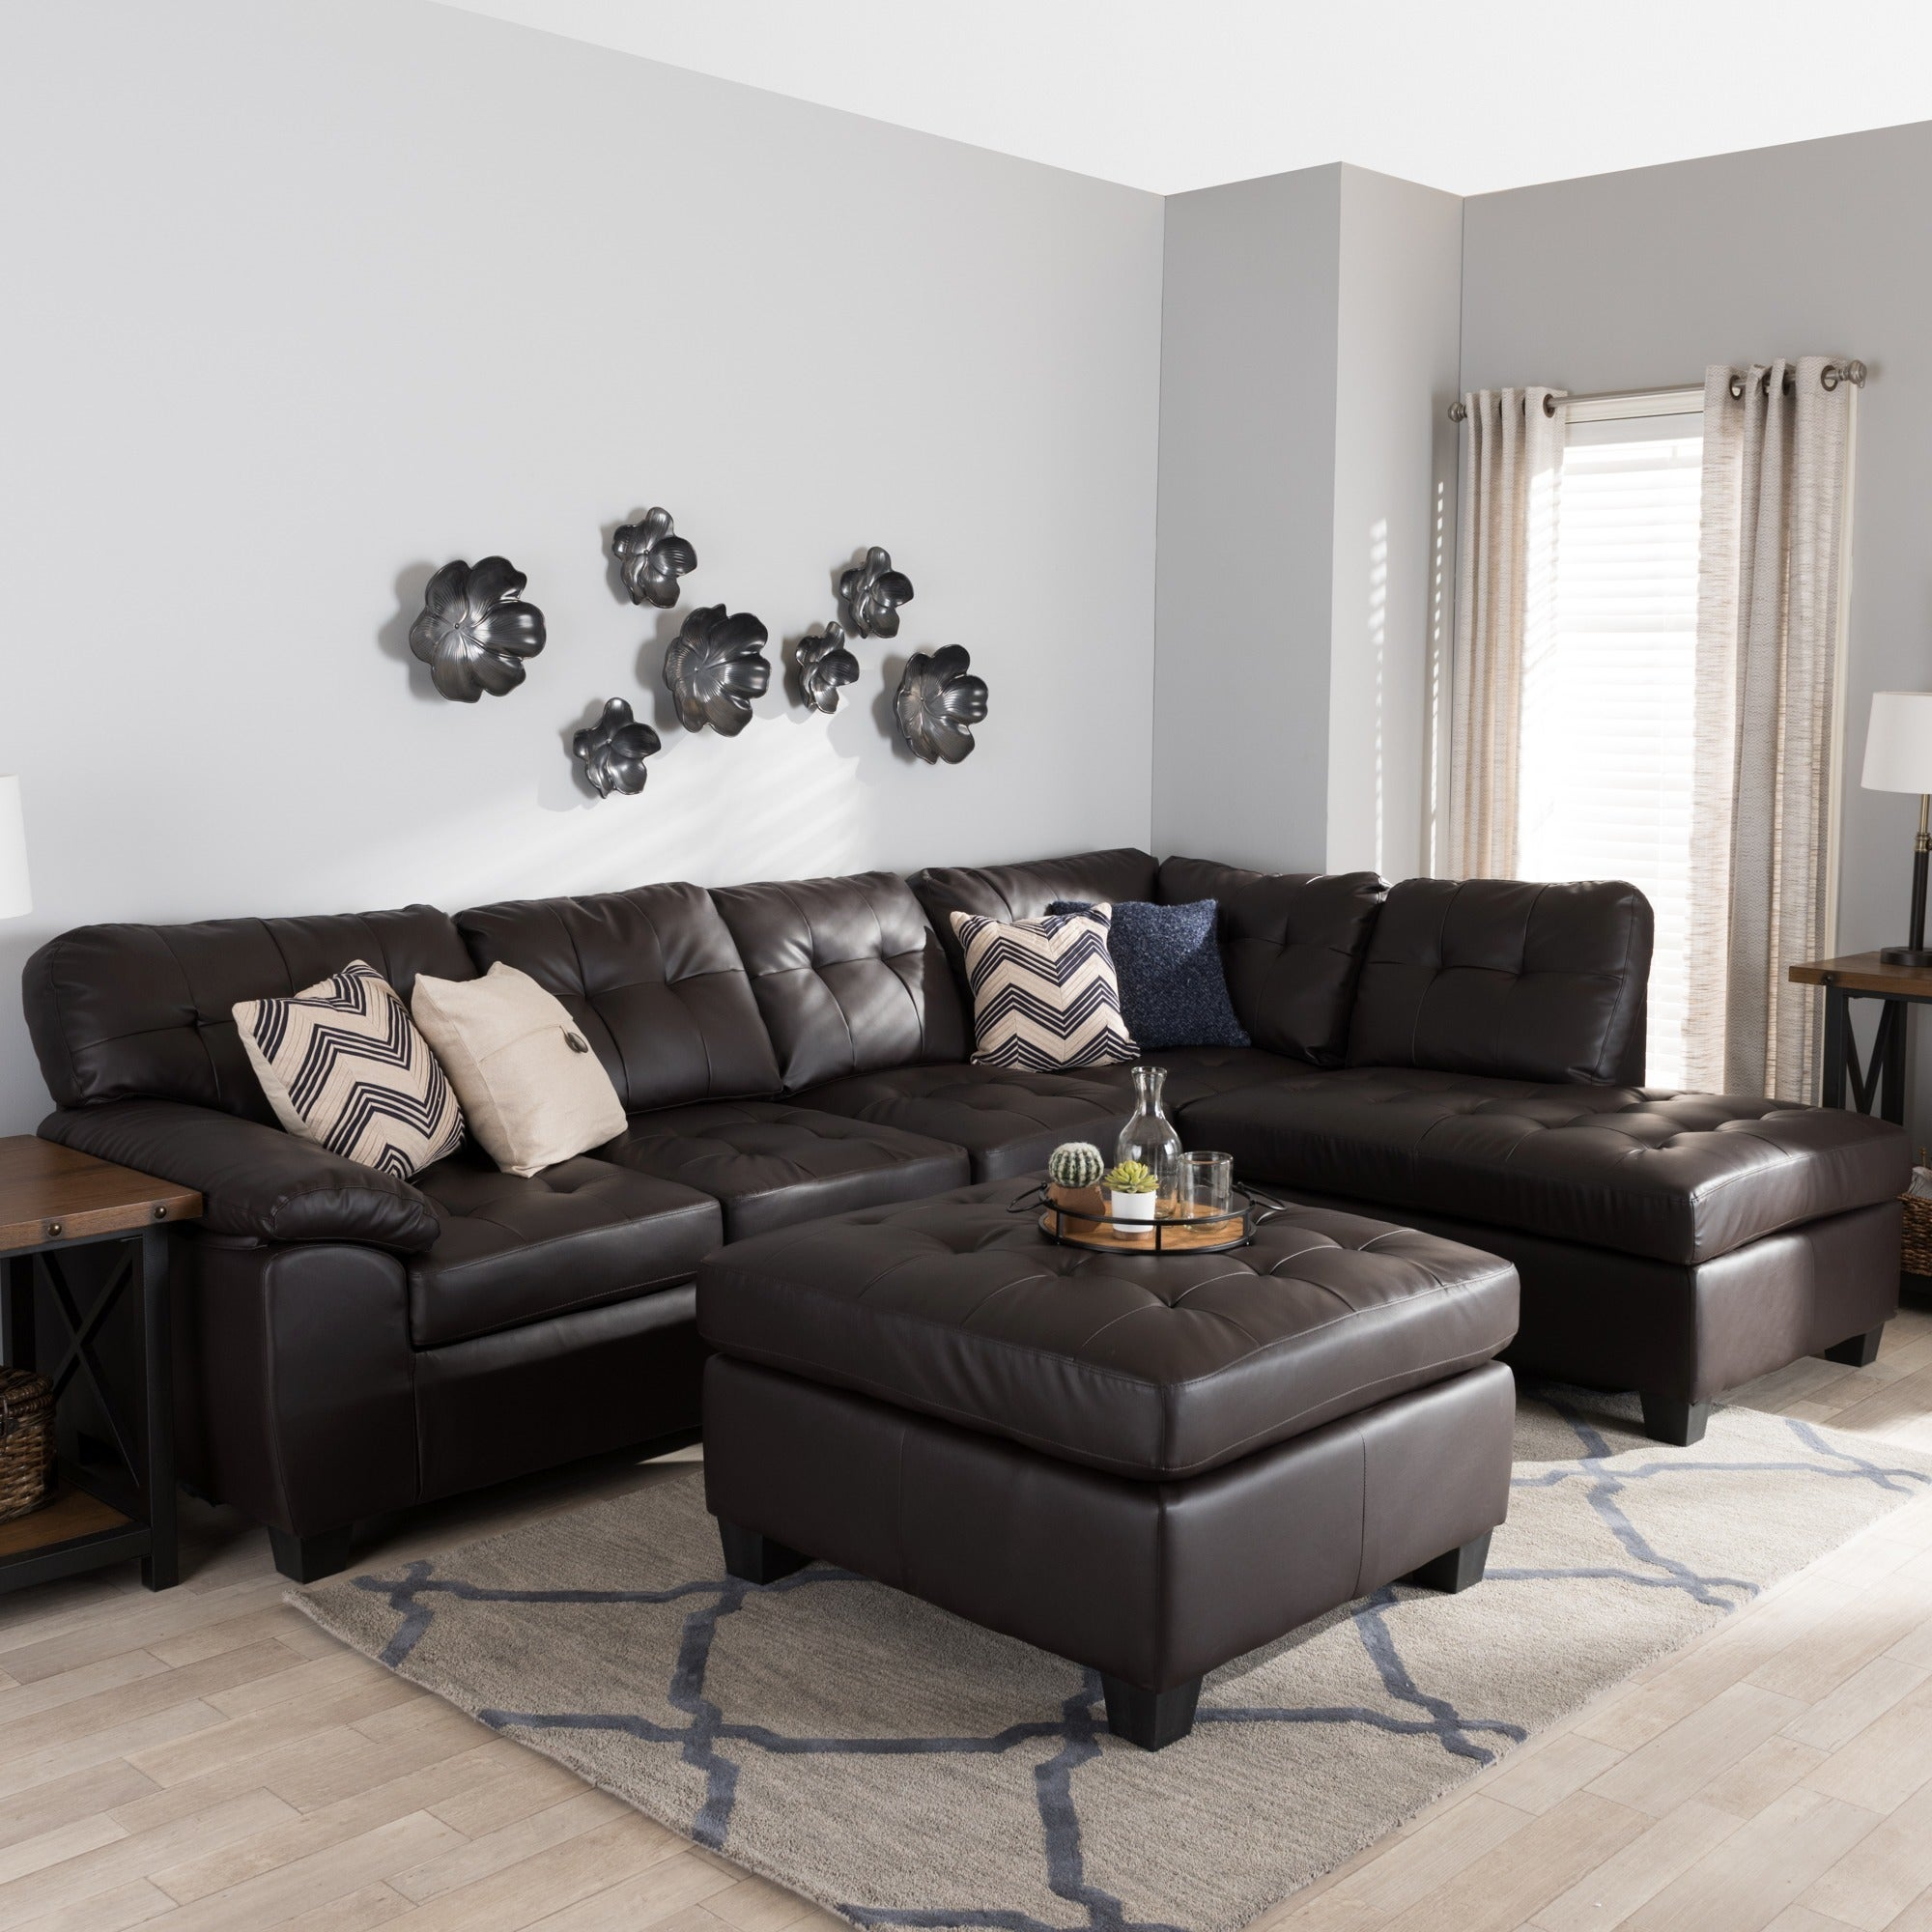 Magnificent Baxton Studio Mario Brown Leather Sectional Sofa With Ottoman Squirreltailoven Fun Painted Chair Ideas Images Squirreltailovenorg